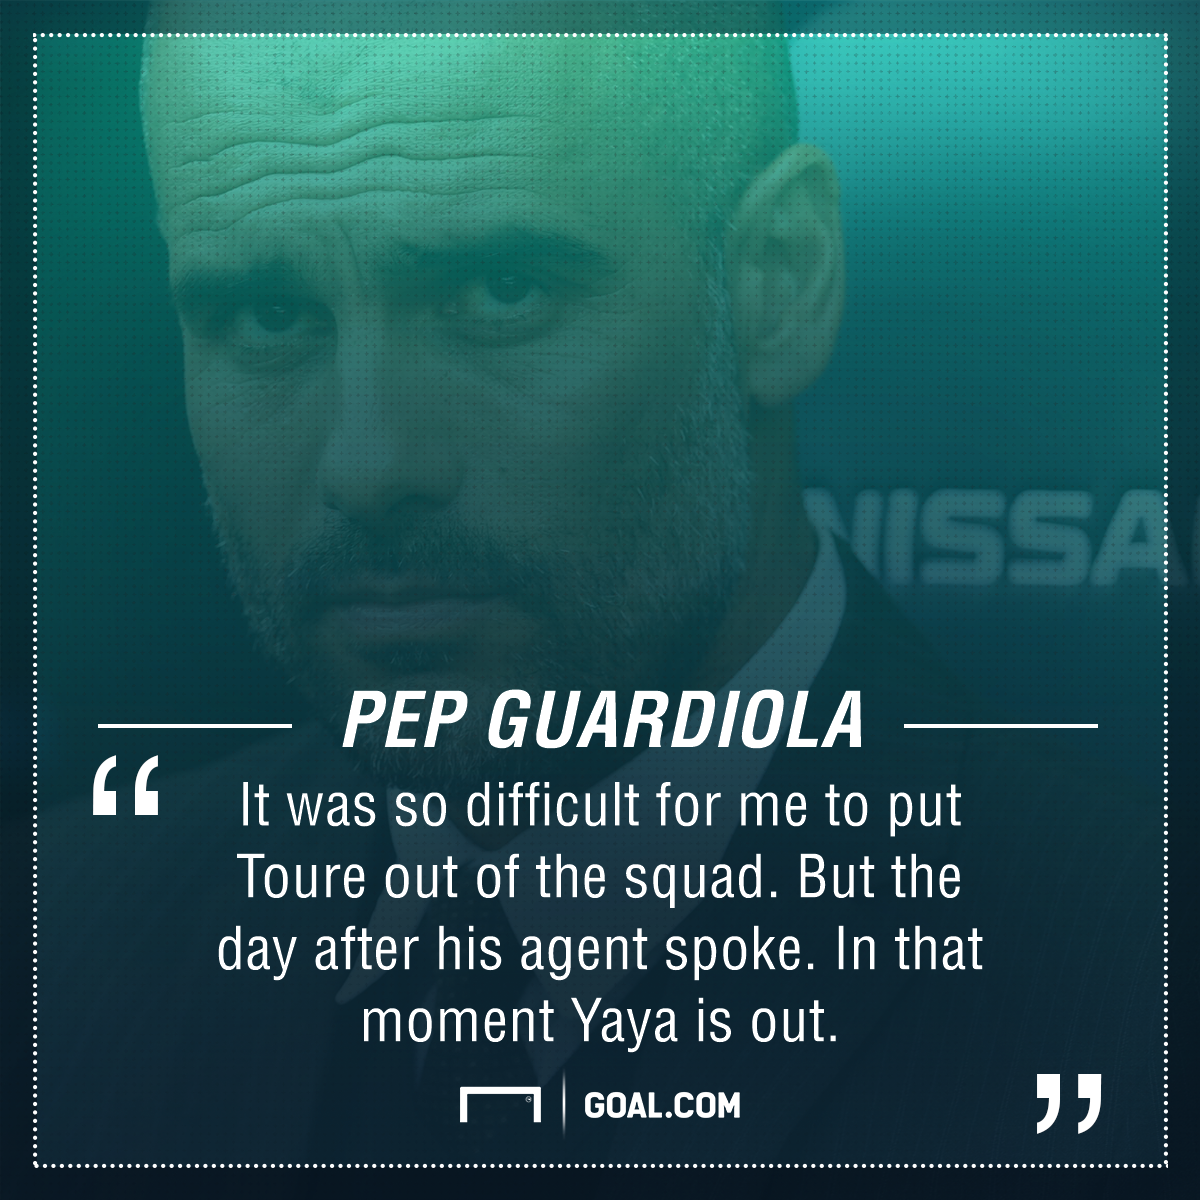 Pep 'is more like a genius' - Gundogan compares Guardiola, Klopp